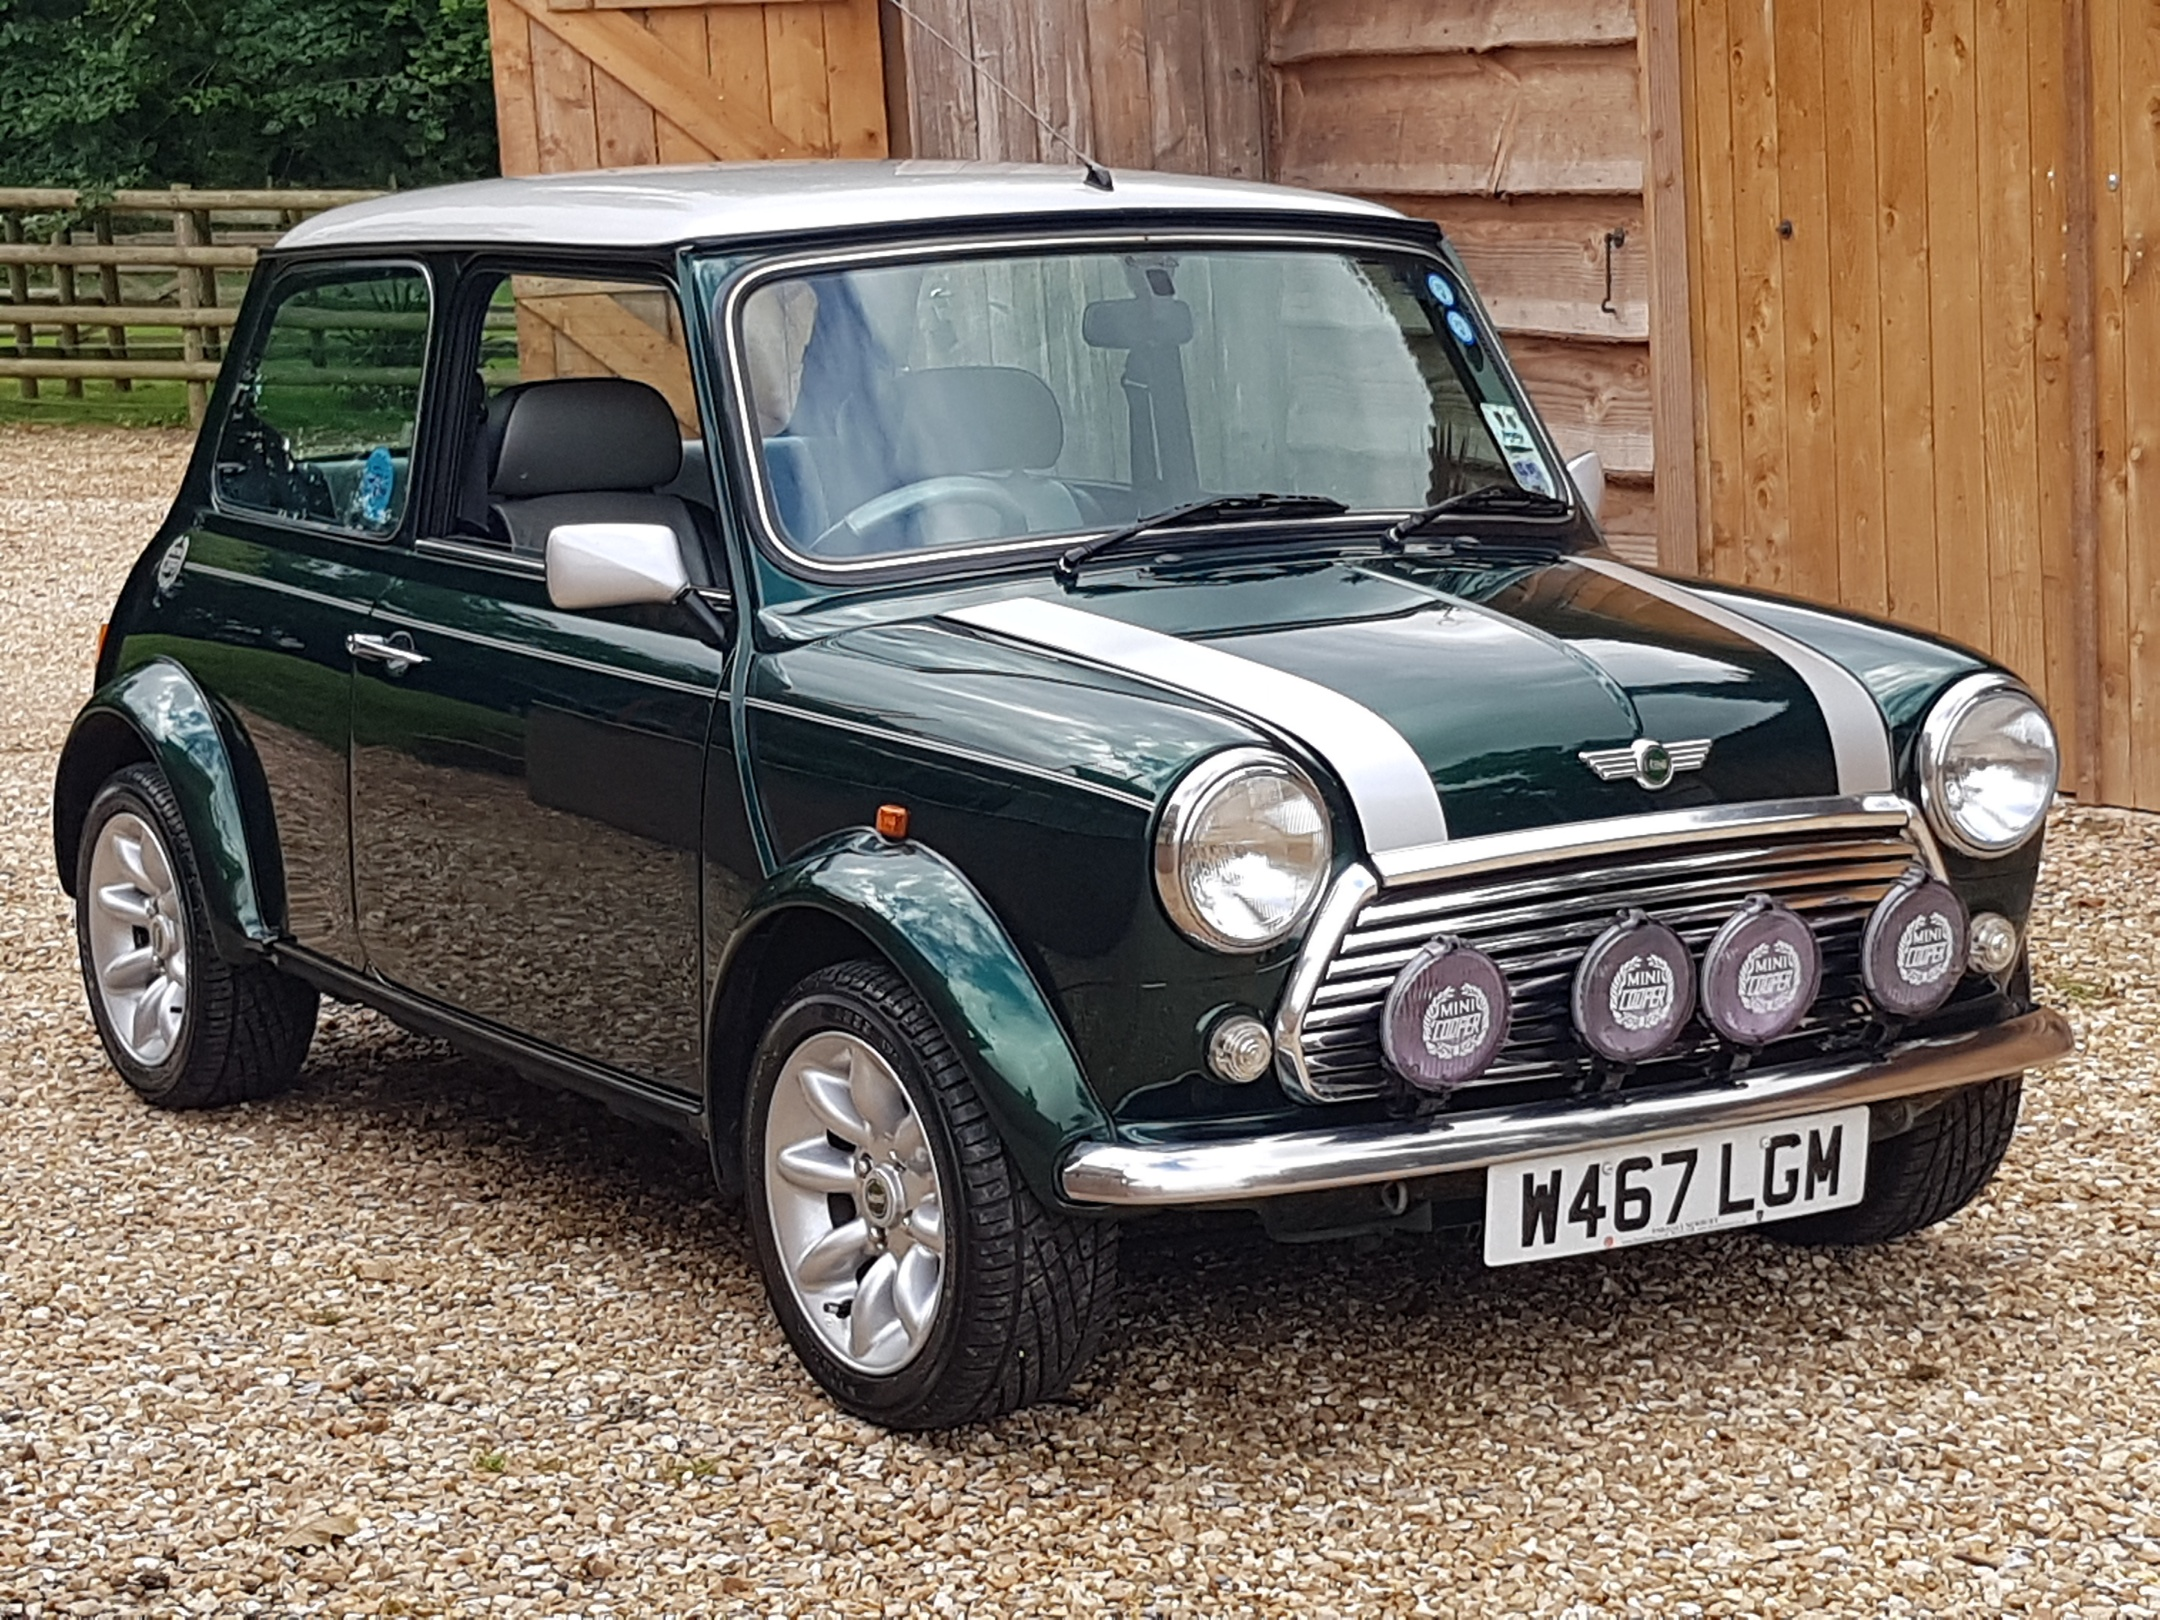 ** NOW SOLD ** 2000 Rover Mini Cooper Sport On Just 46550 Miles From New.